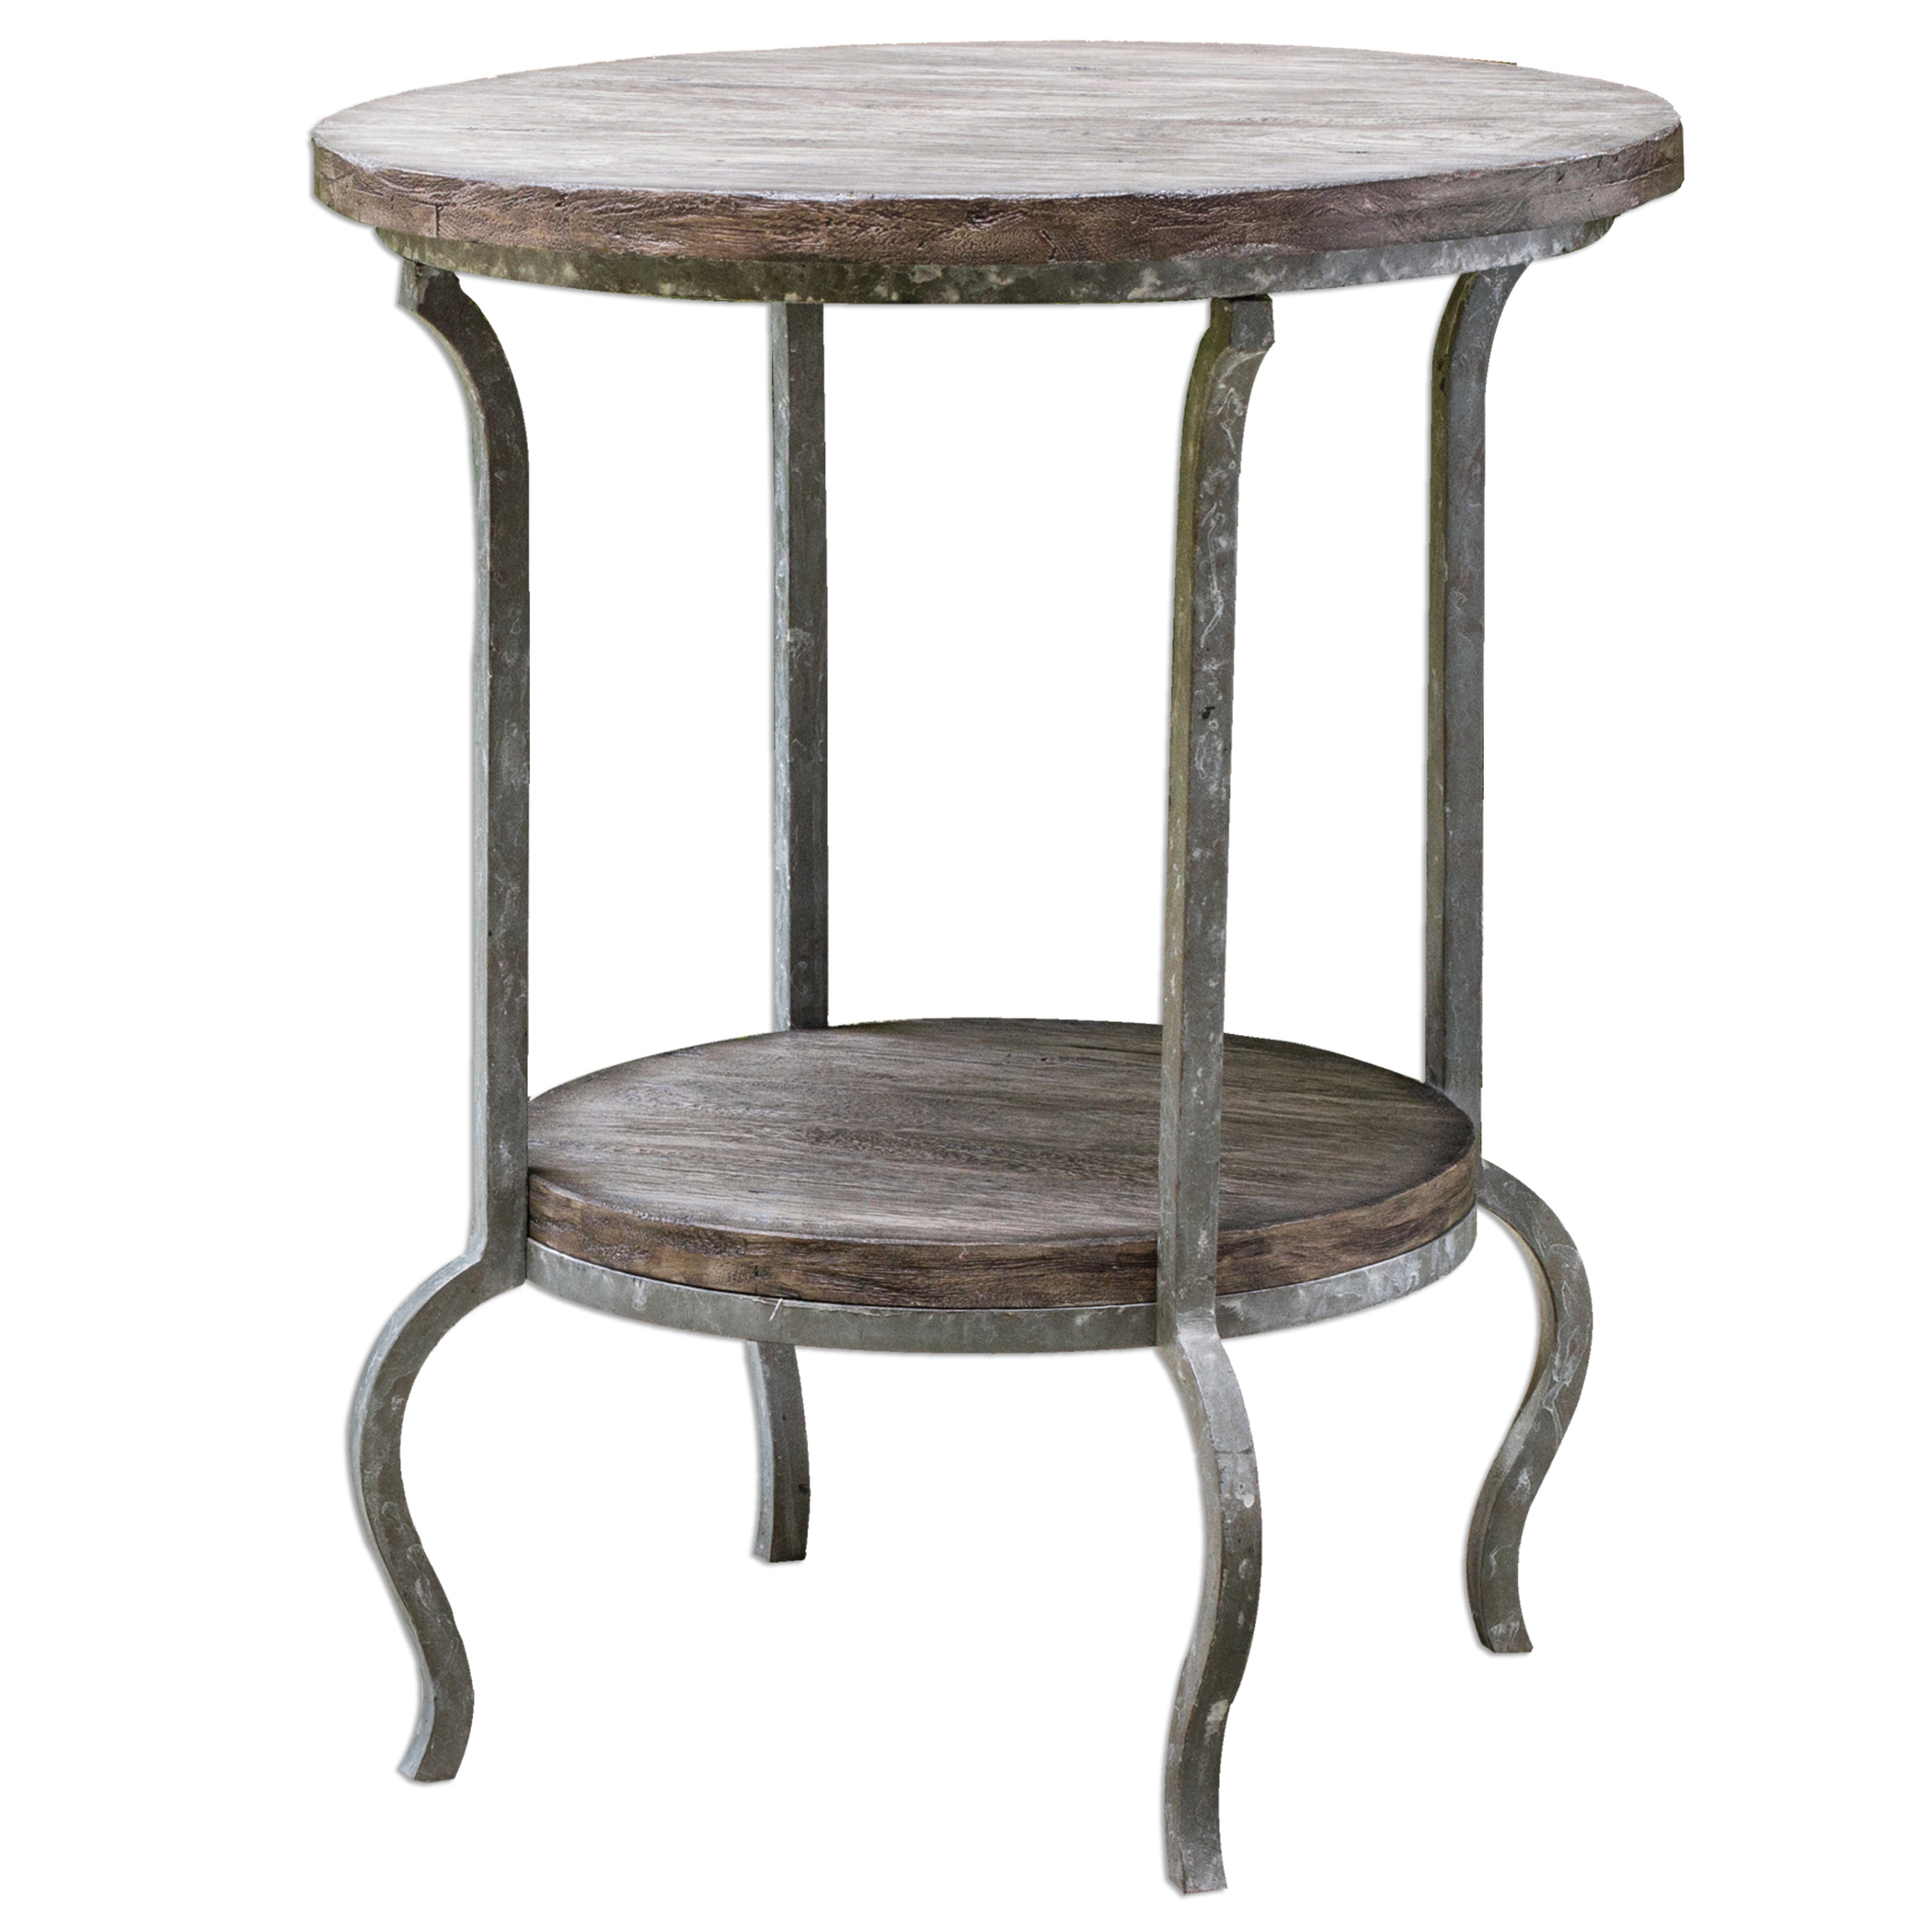 Uttermost Accent Furniture Marcin Round Accent Table - Item Number: 25697